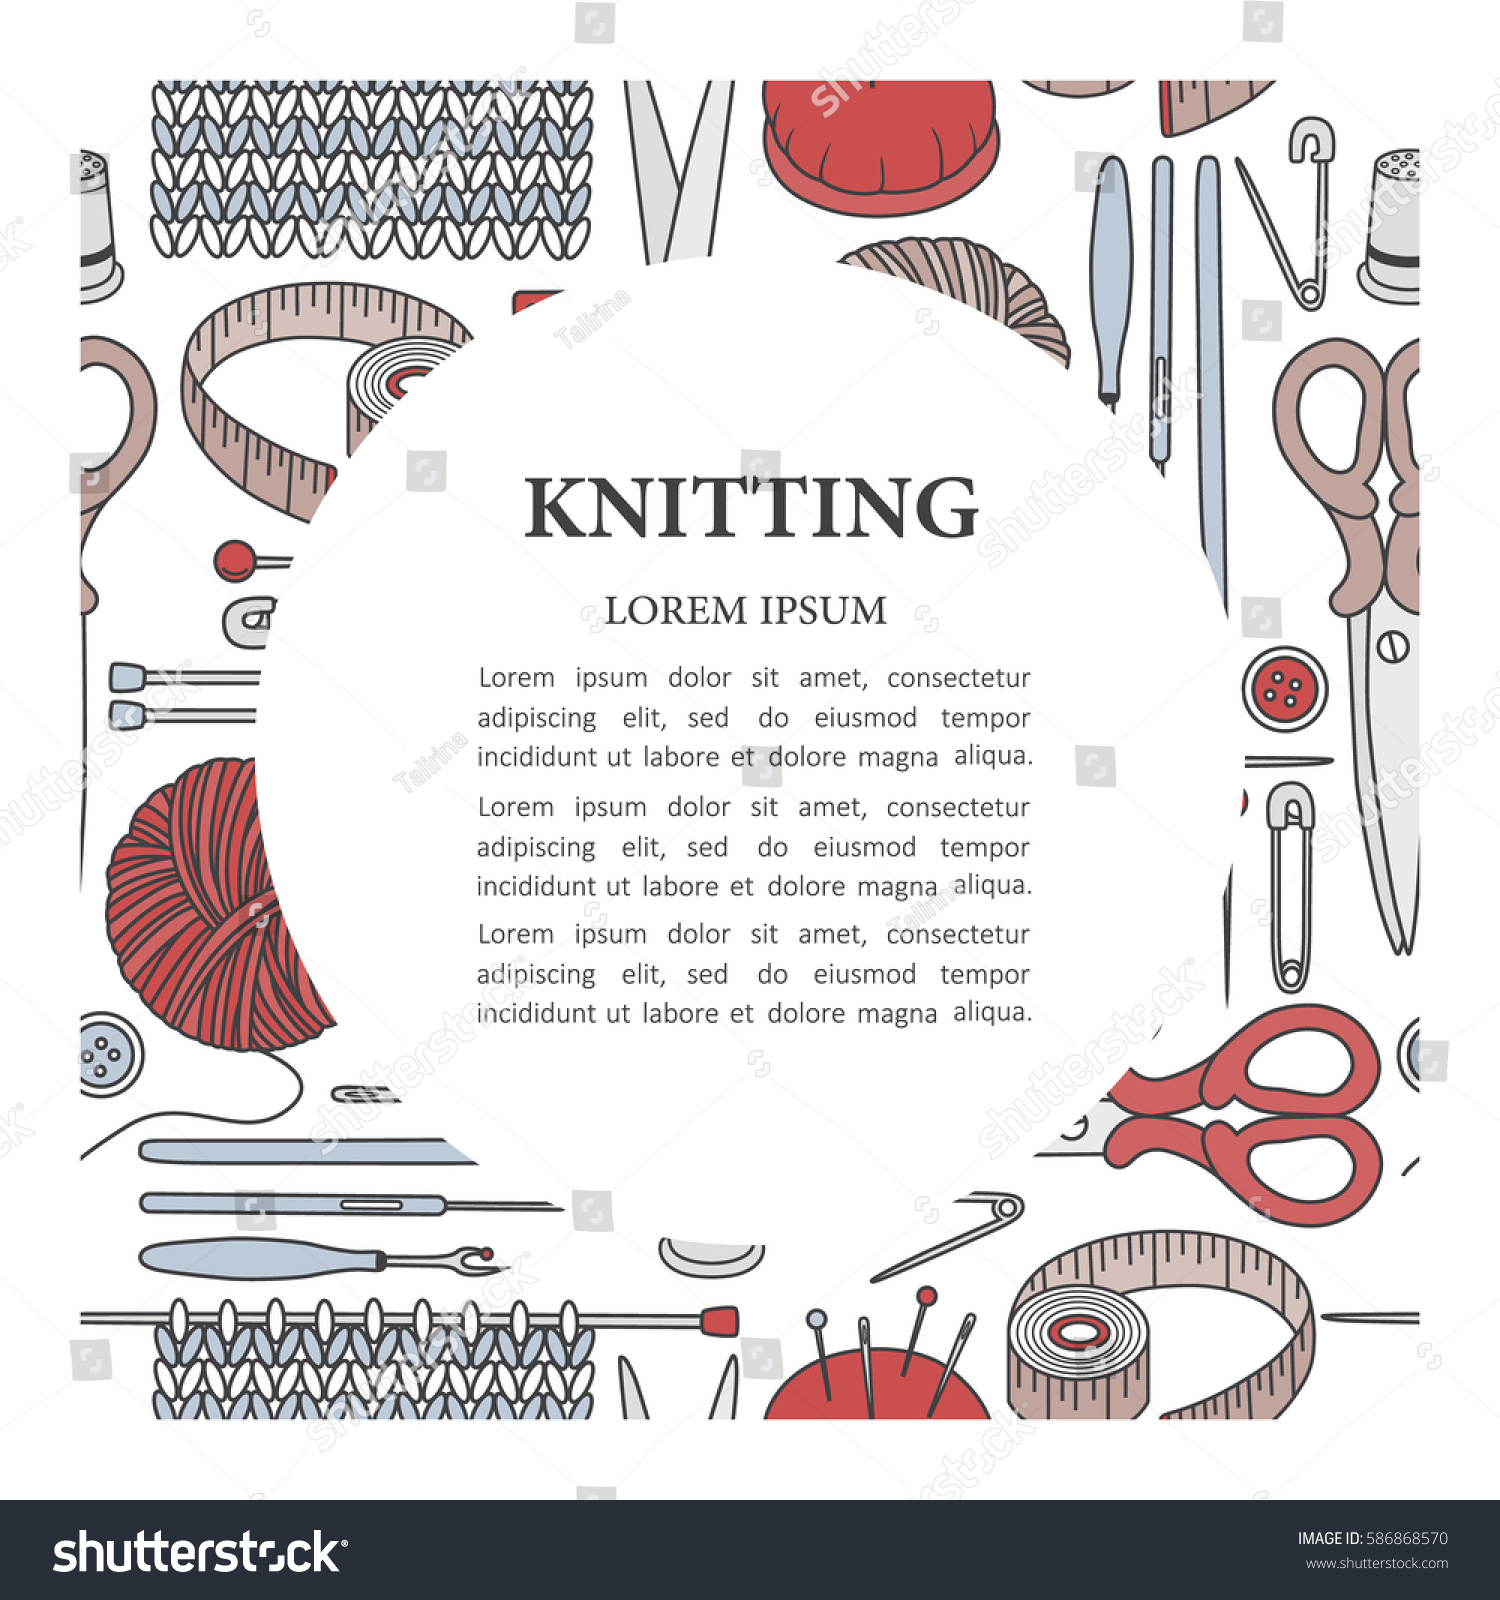 Poster design tools - Set Of Tools For Knitting And Text Hand Drawn Icons Colorful Poster Design